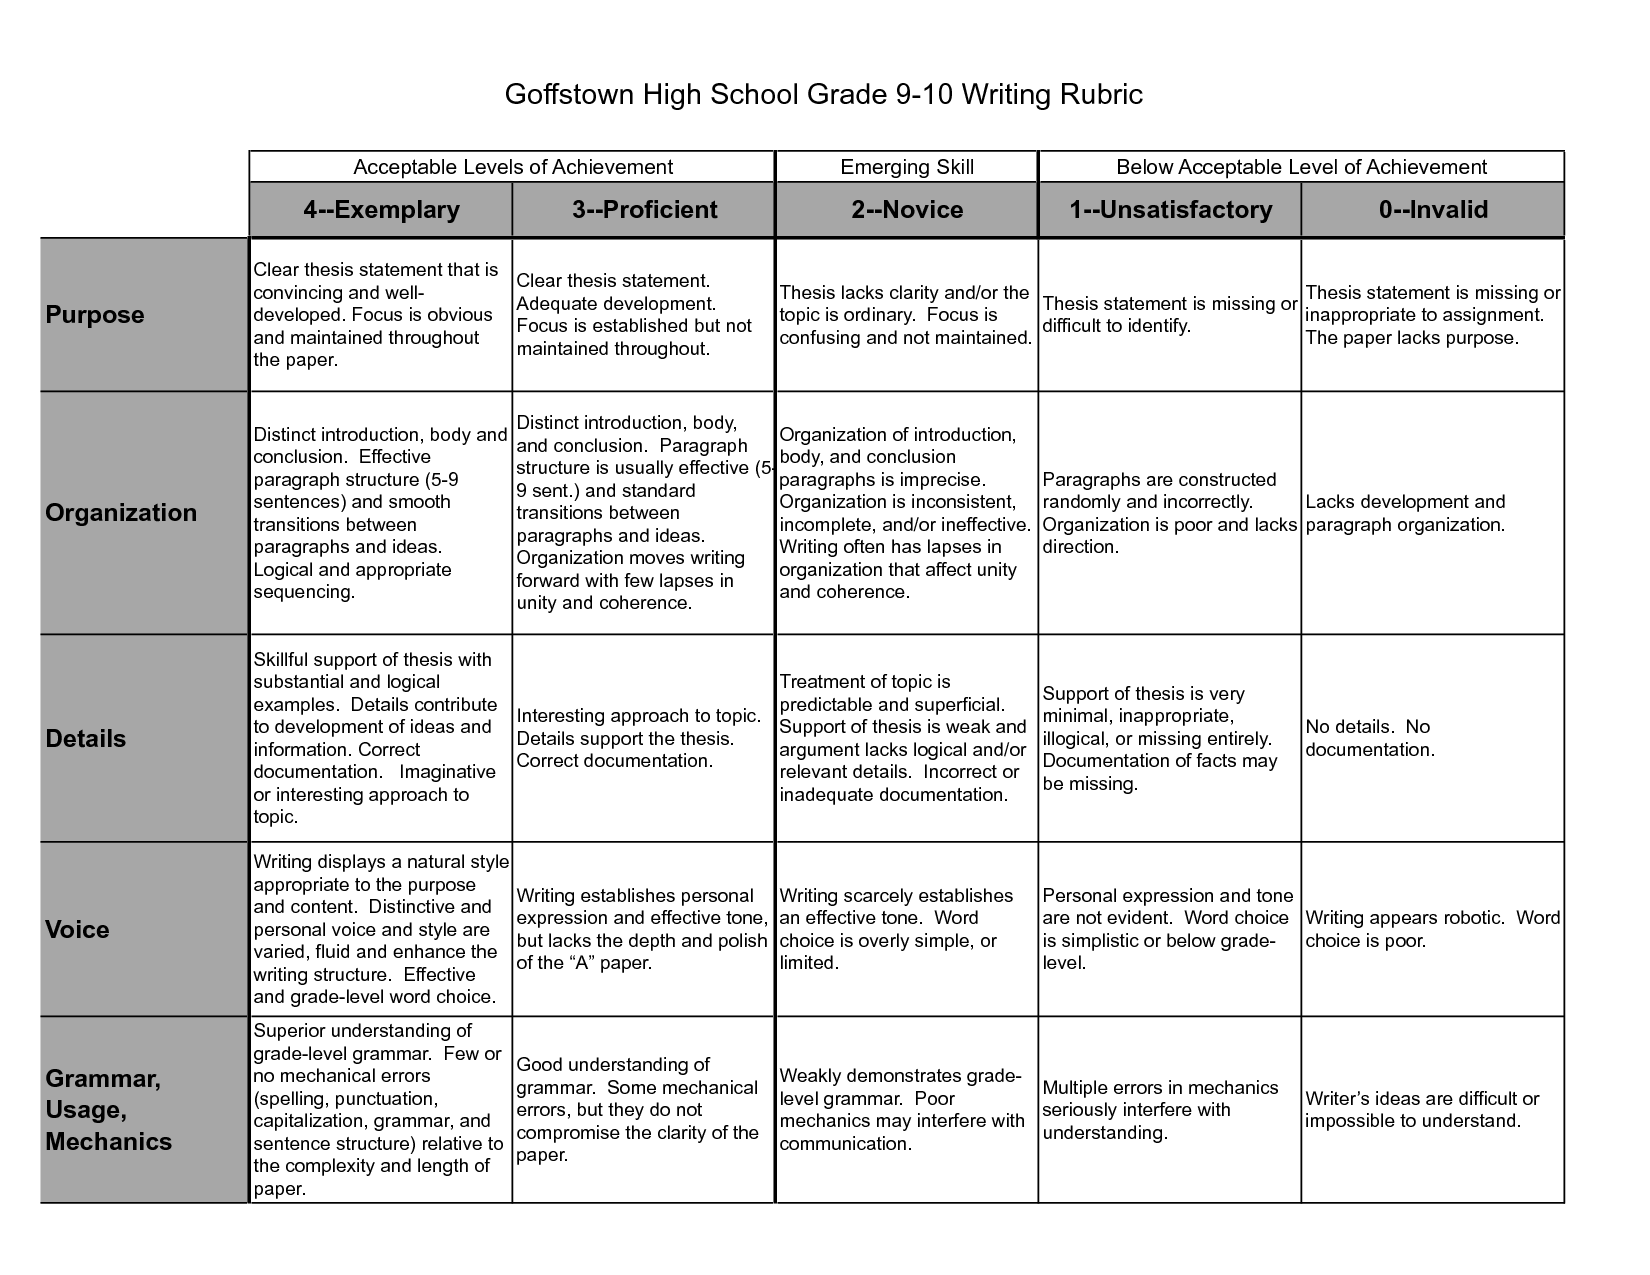 Narrative writing rubric 6th grade